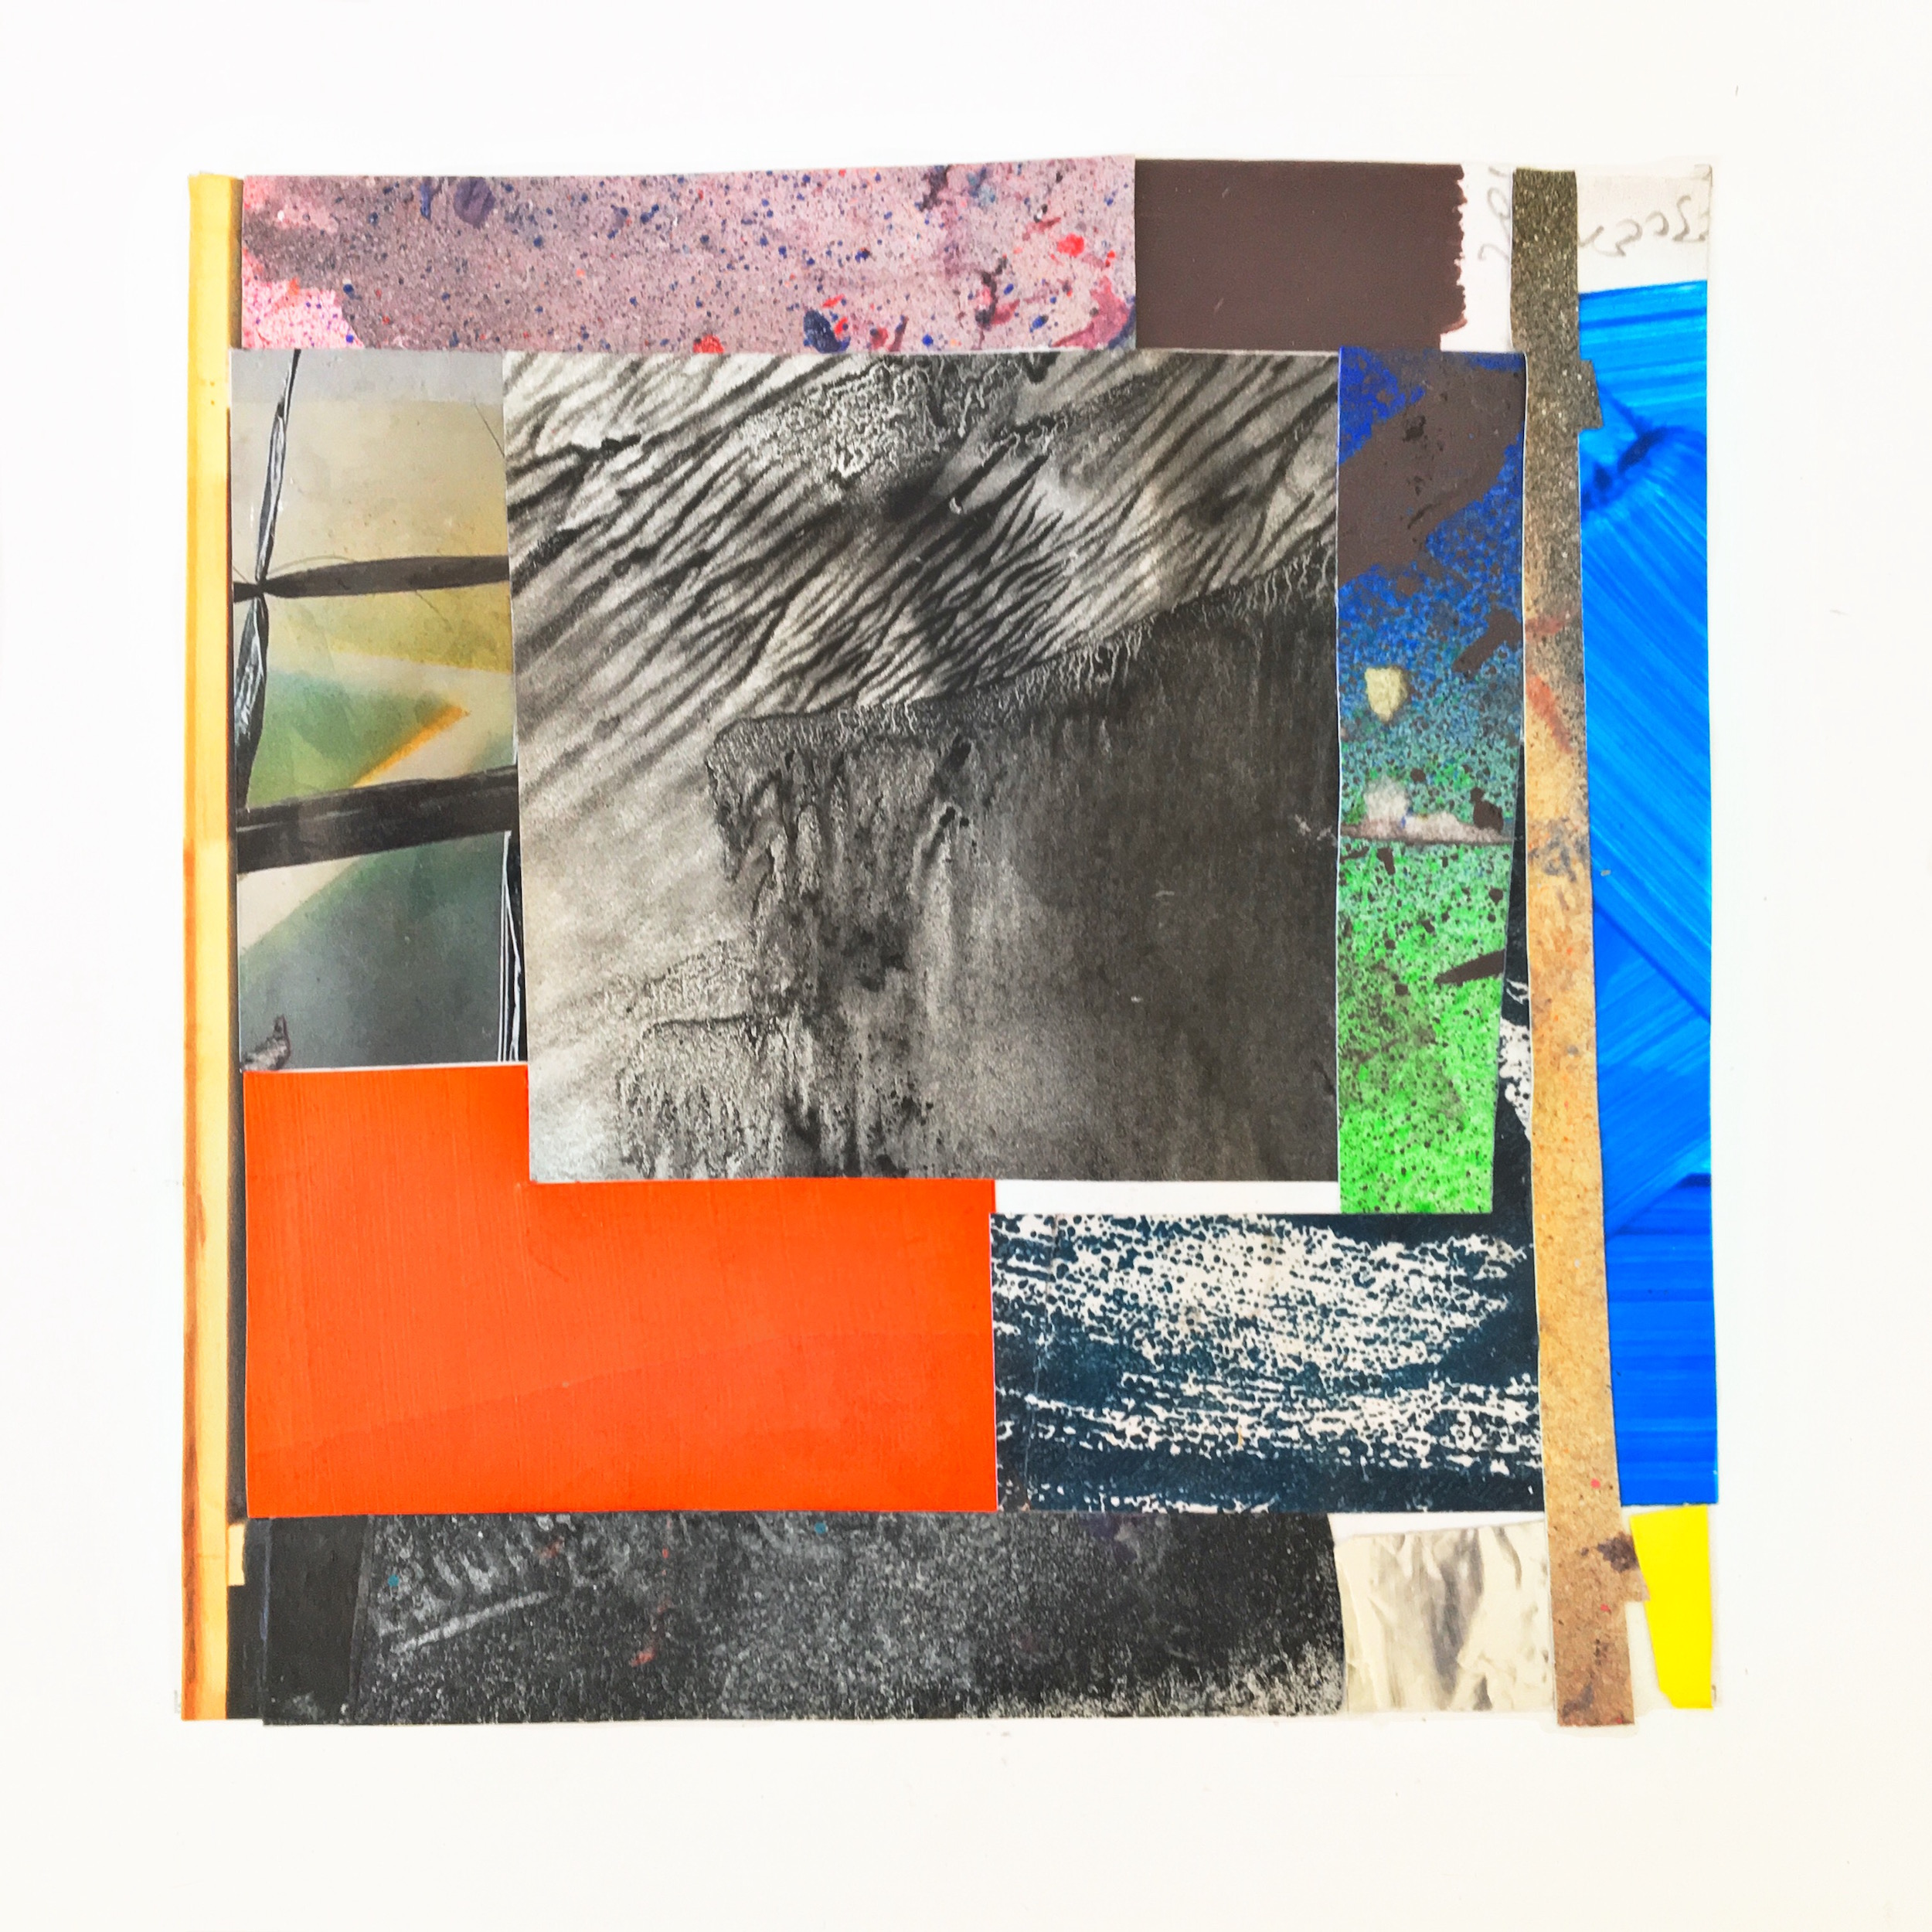 IAIN MUIRHEAD   18136:18160,   2018. Peripheral painting aggregate (2014-2018) bricolage on paper. 8 x 8 inches each.